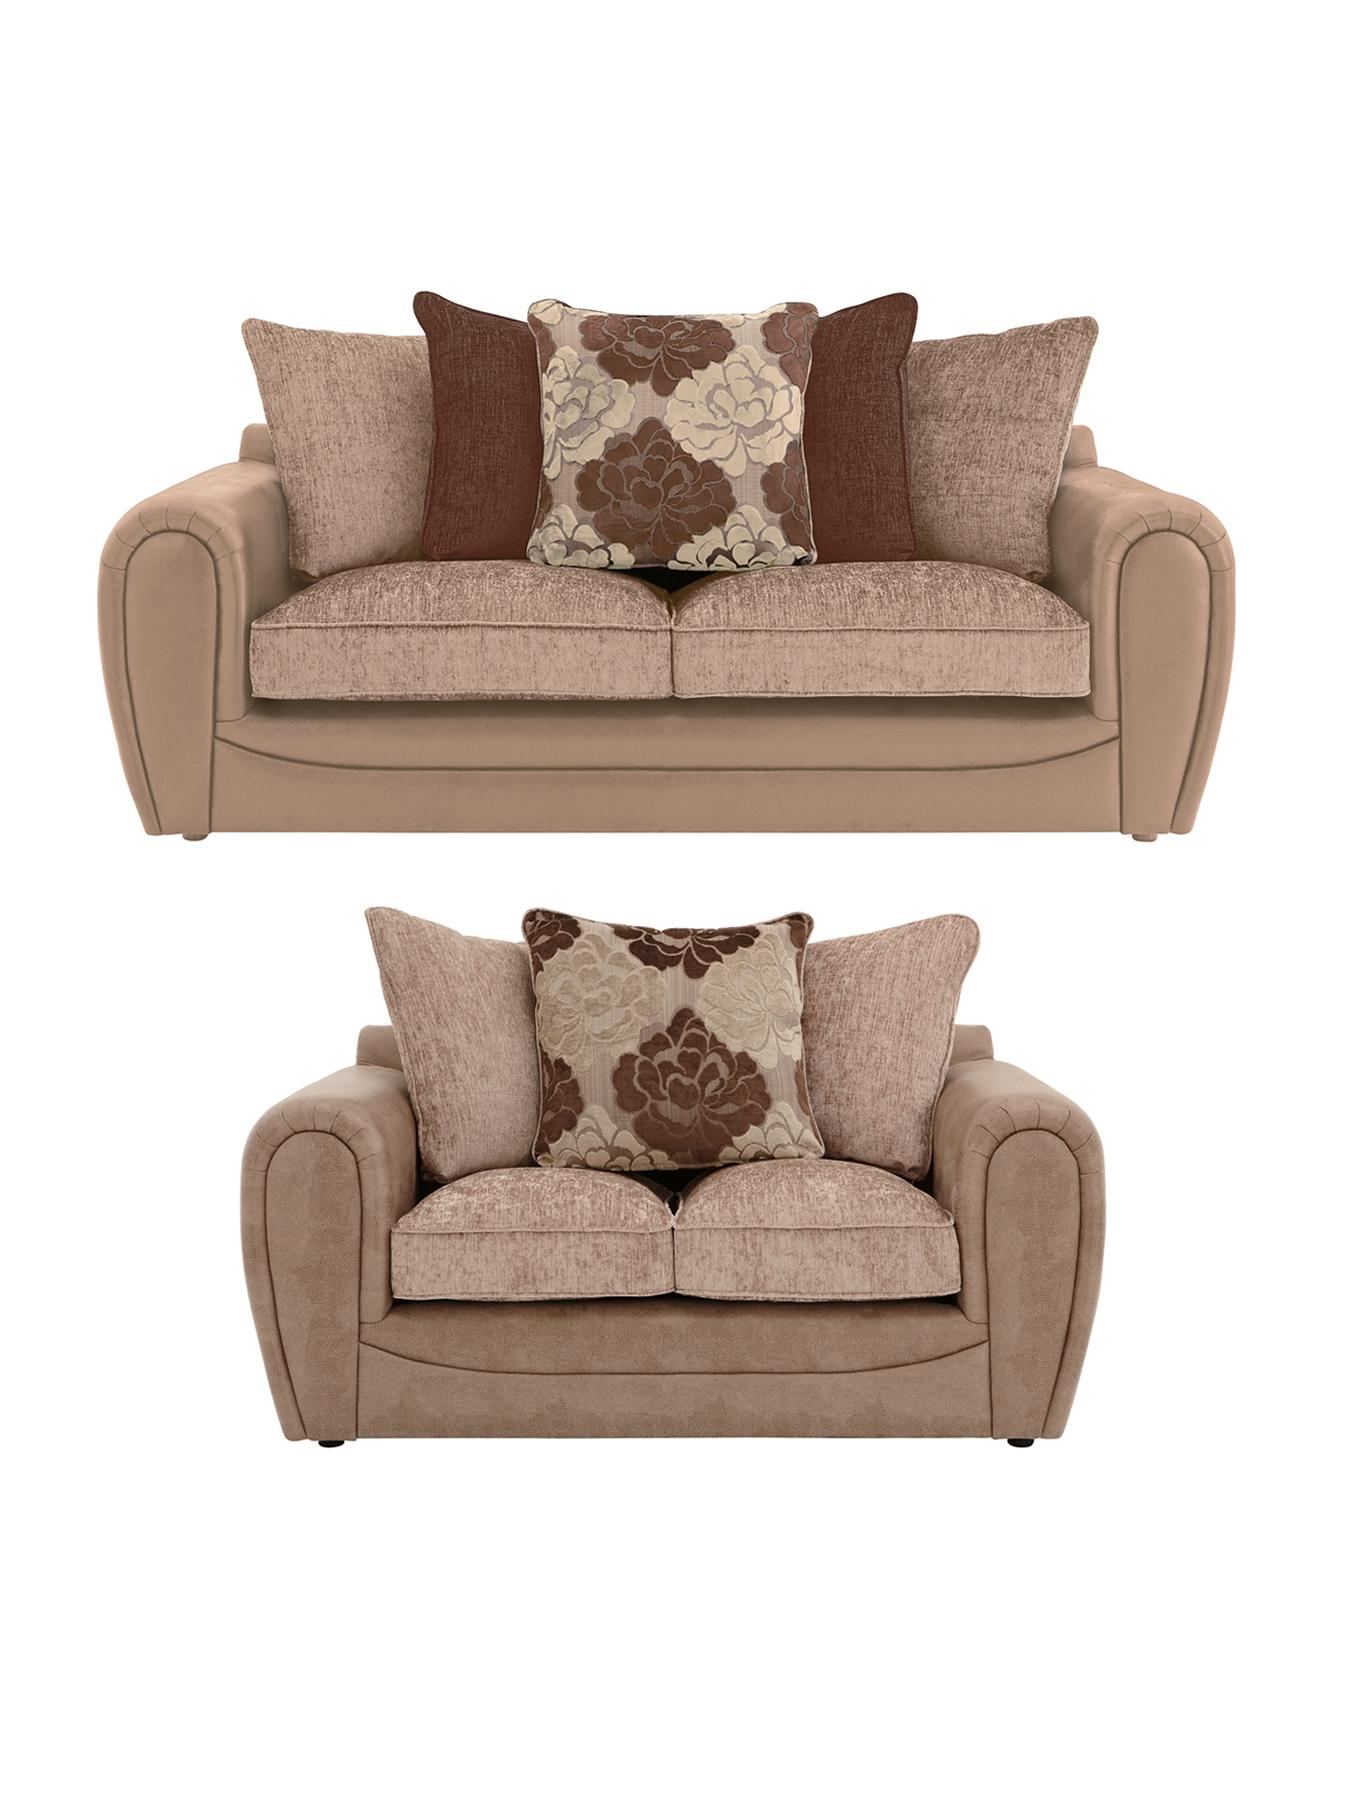 brown fabric sofas two seater living room www littlewoods com